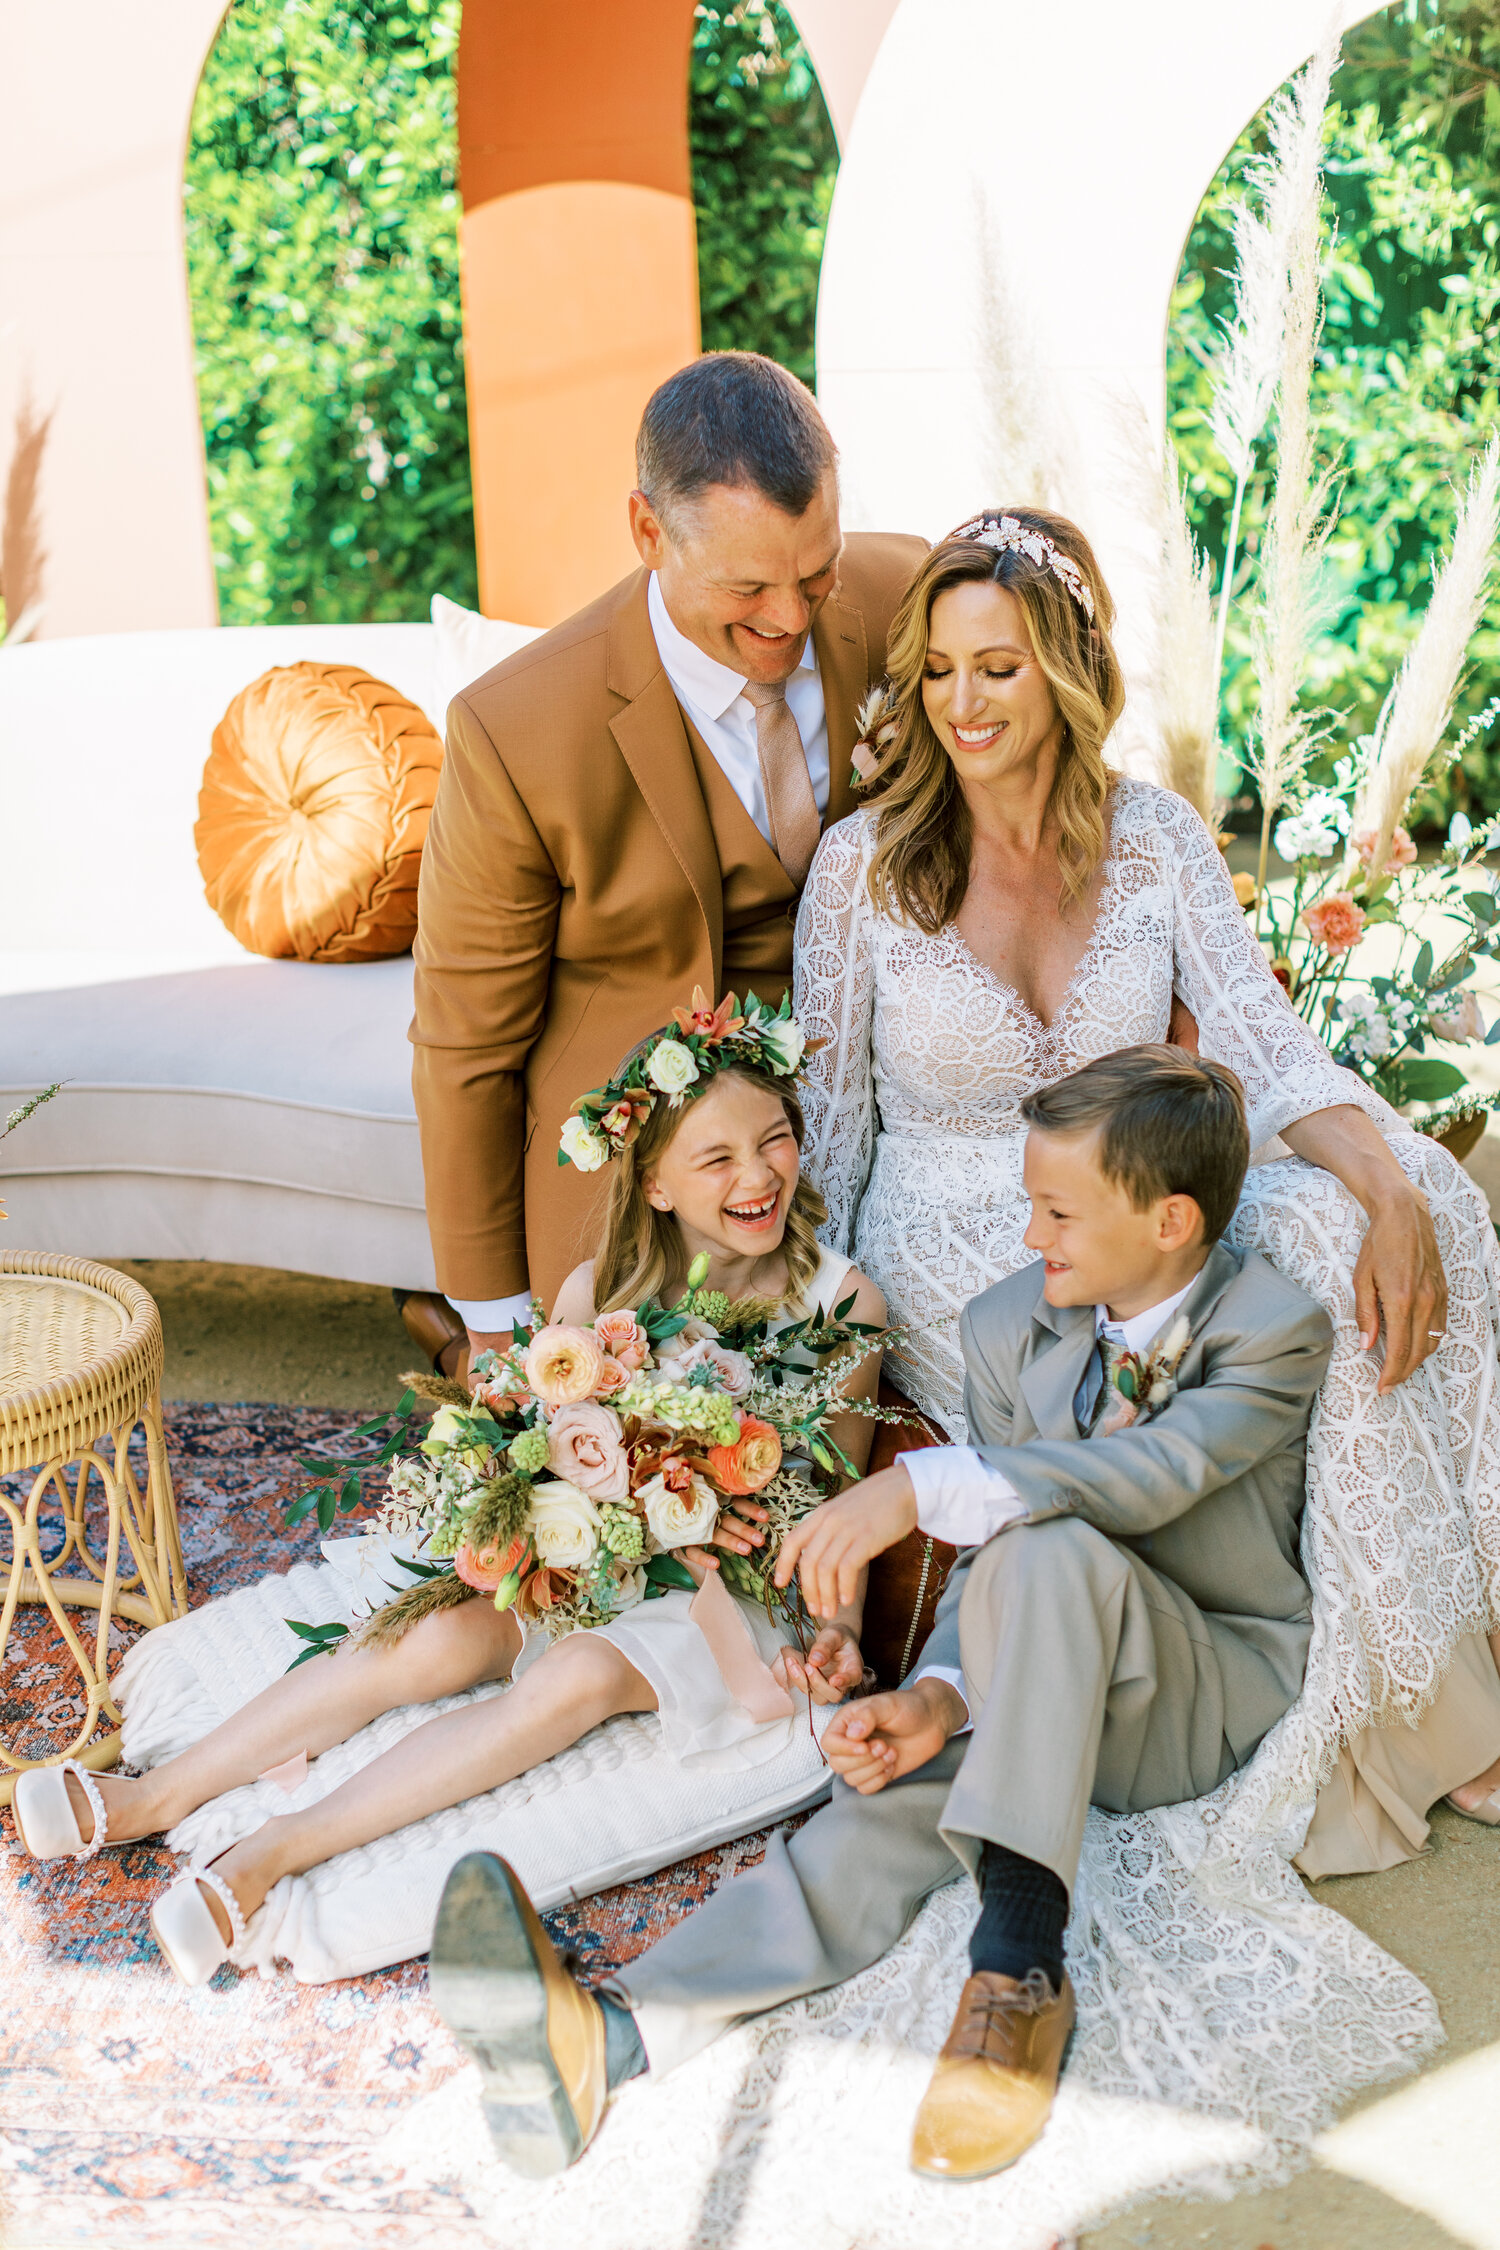 www.santabarbarawedding.com   Events by Fran   Ever After Petite Venue   Kendall Ann Photo   Tangled Lotus   My Lovely Events   Ever After Bridal   Friar Tux   Bride and Groom with Children